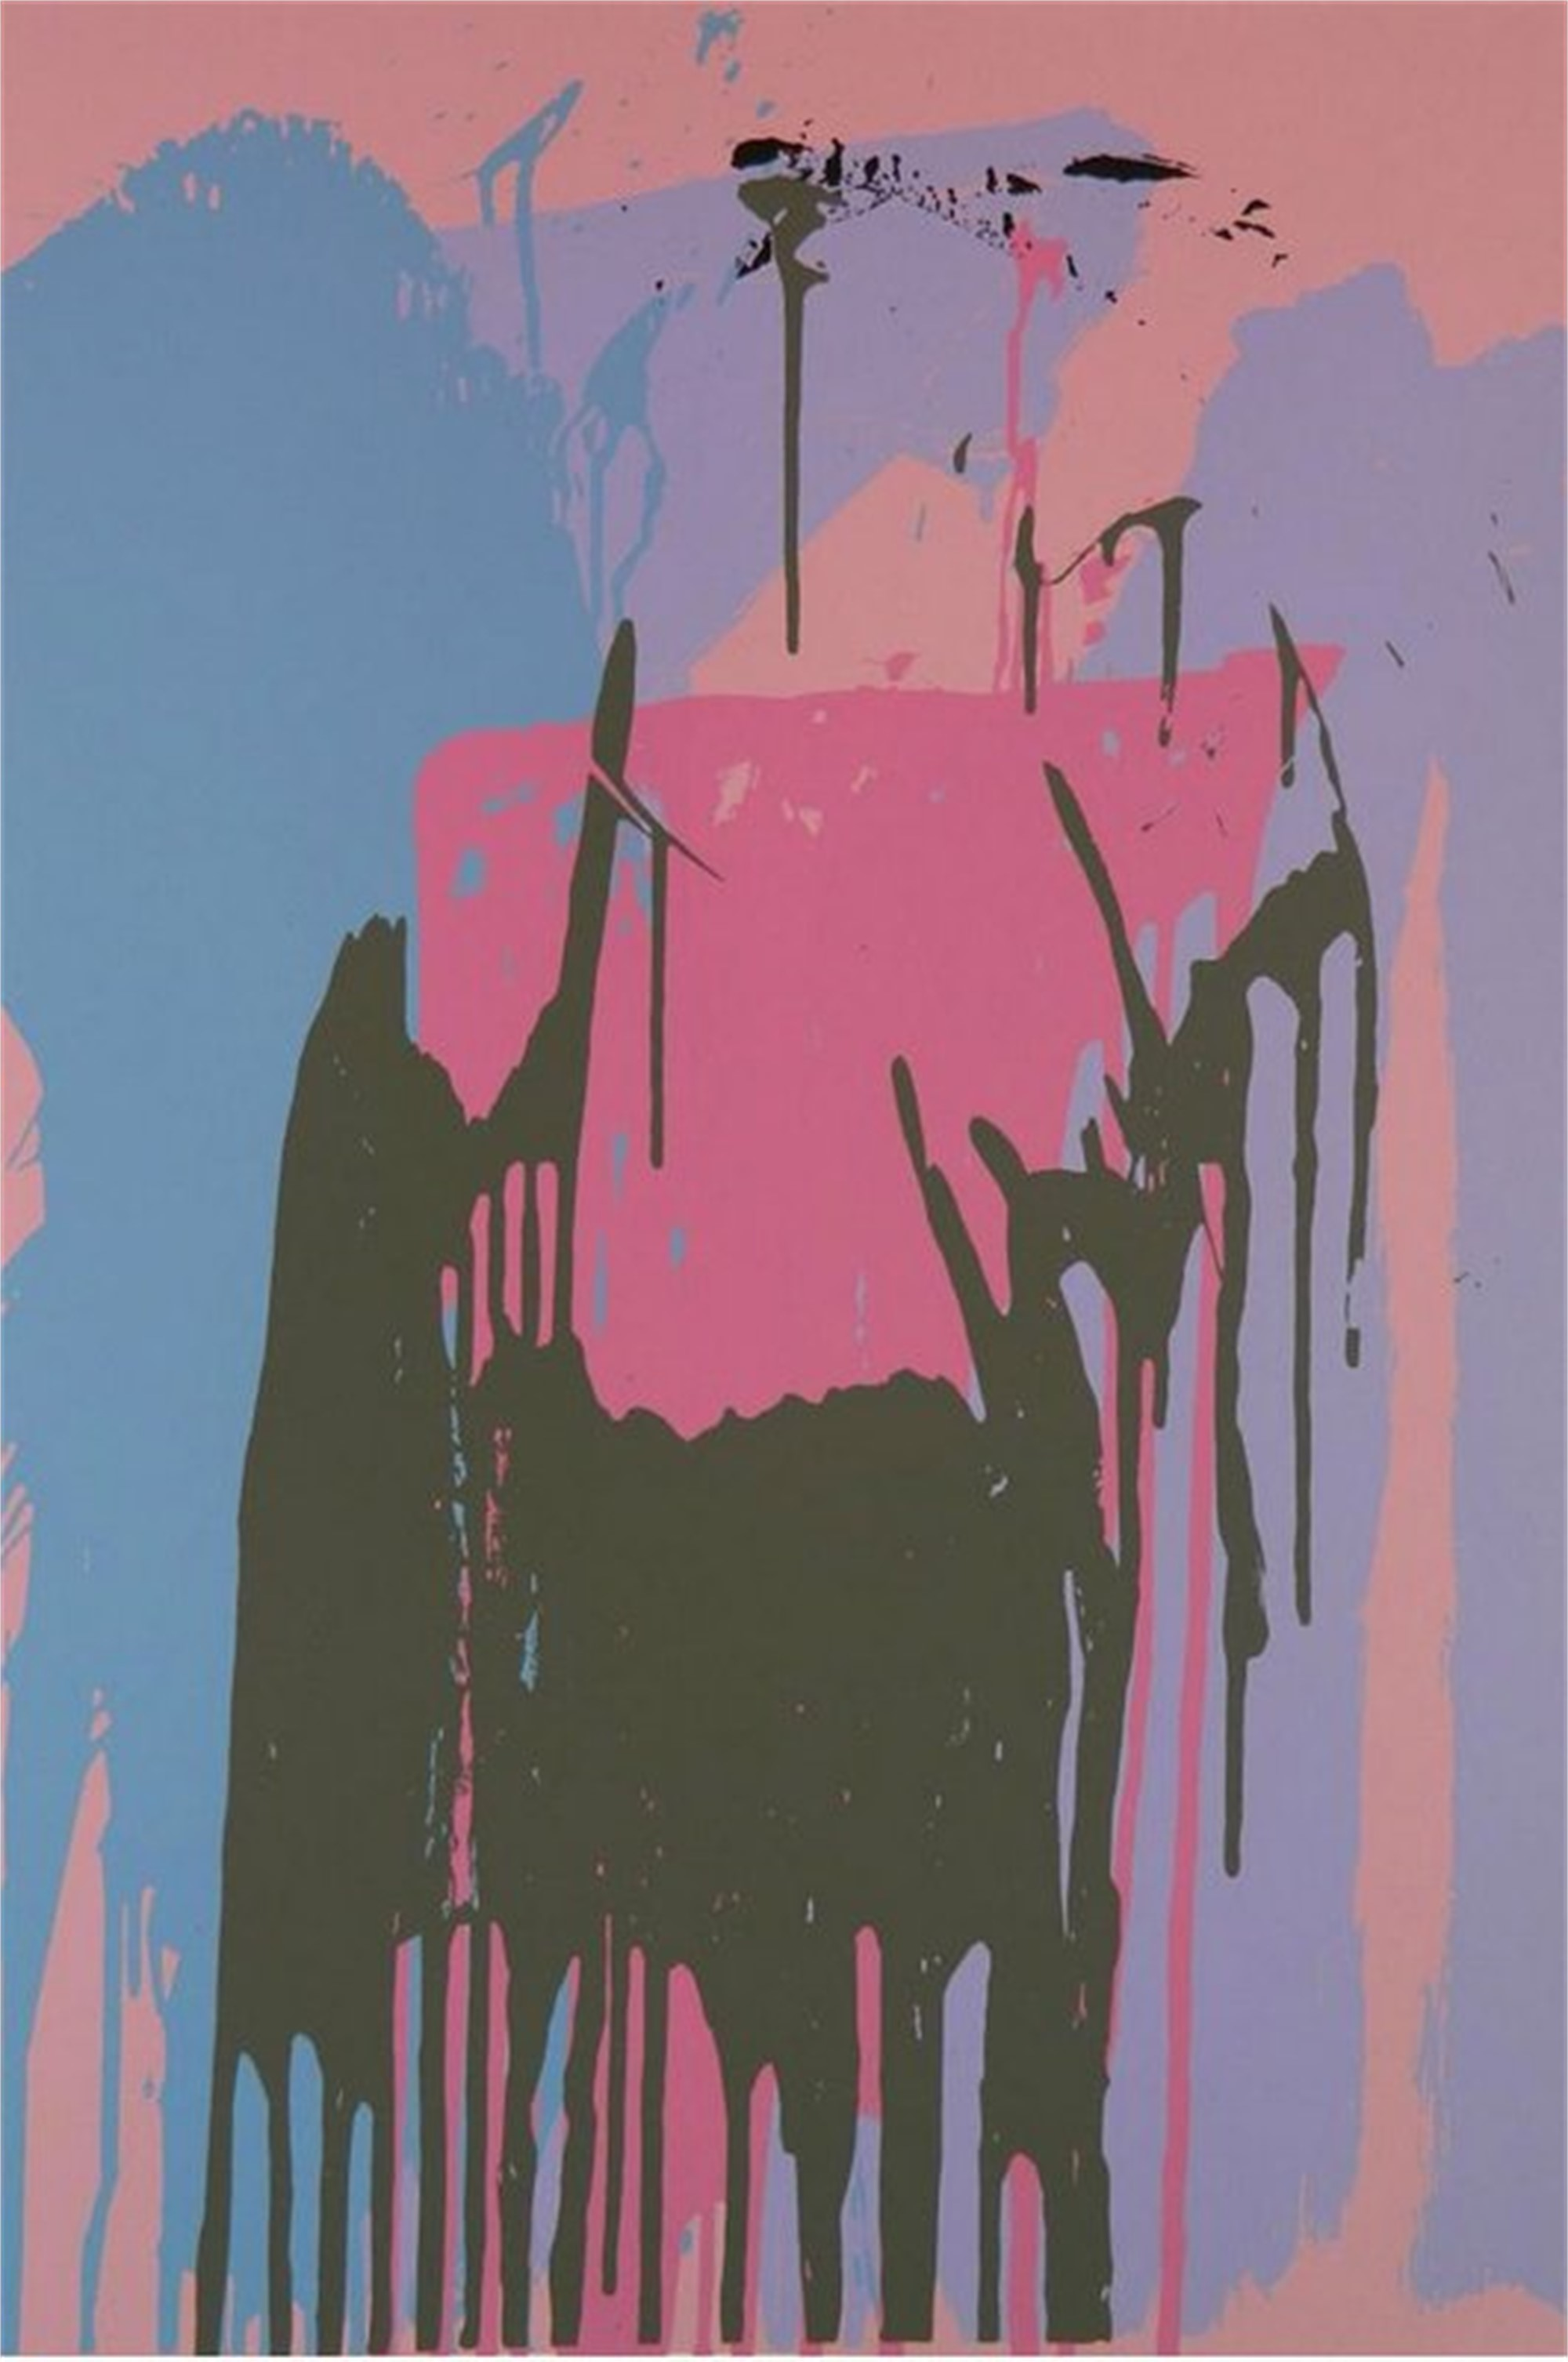 Untitled (Pink) by Larry Poons